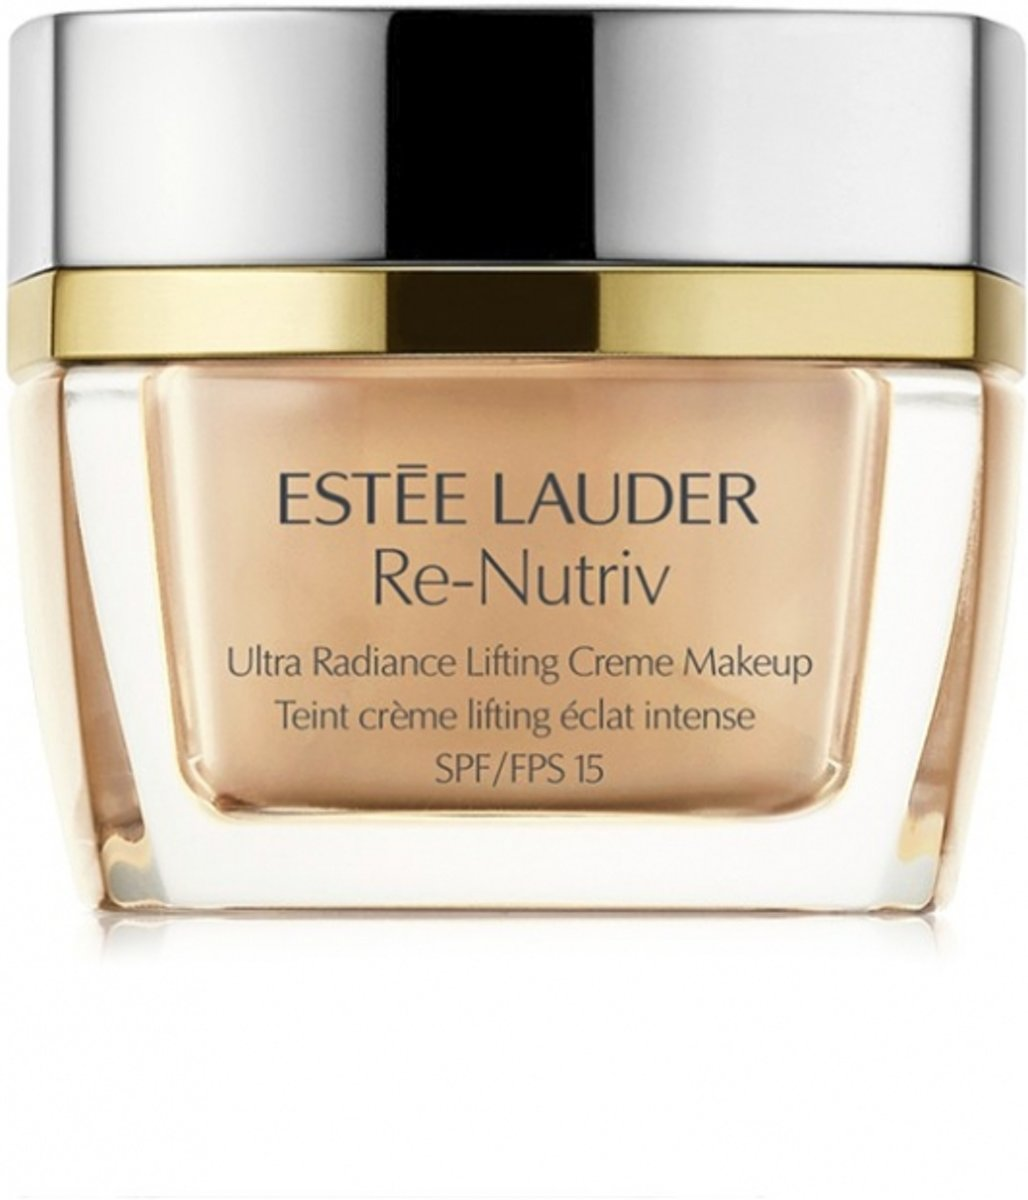 Estée Lauder Re-Nutriv Ultra Radiance Lifting Creme Make-up Foundation 30 ml - 4C1 - Outdoor Beige